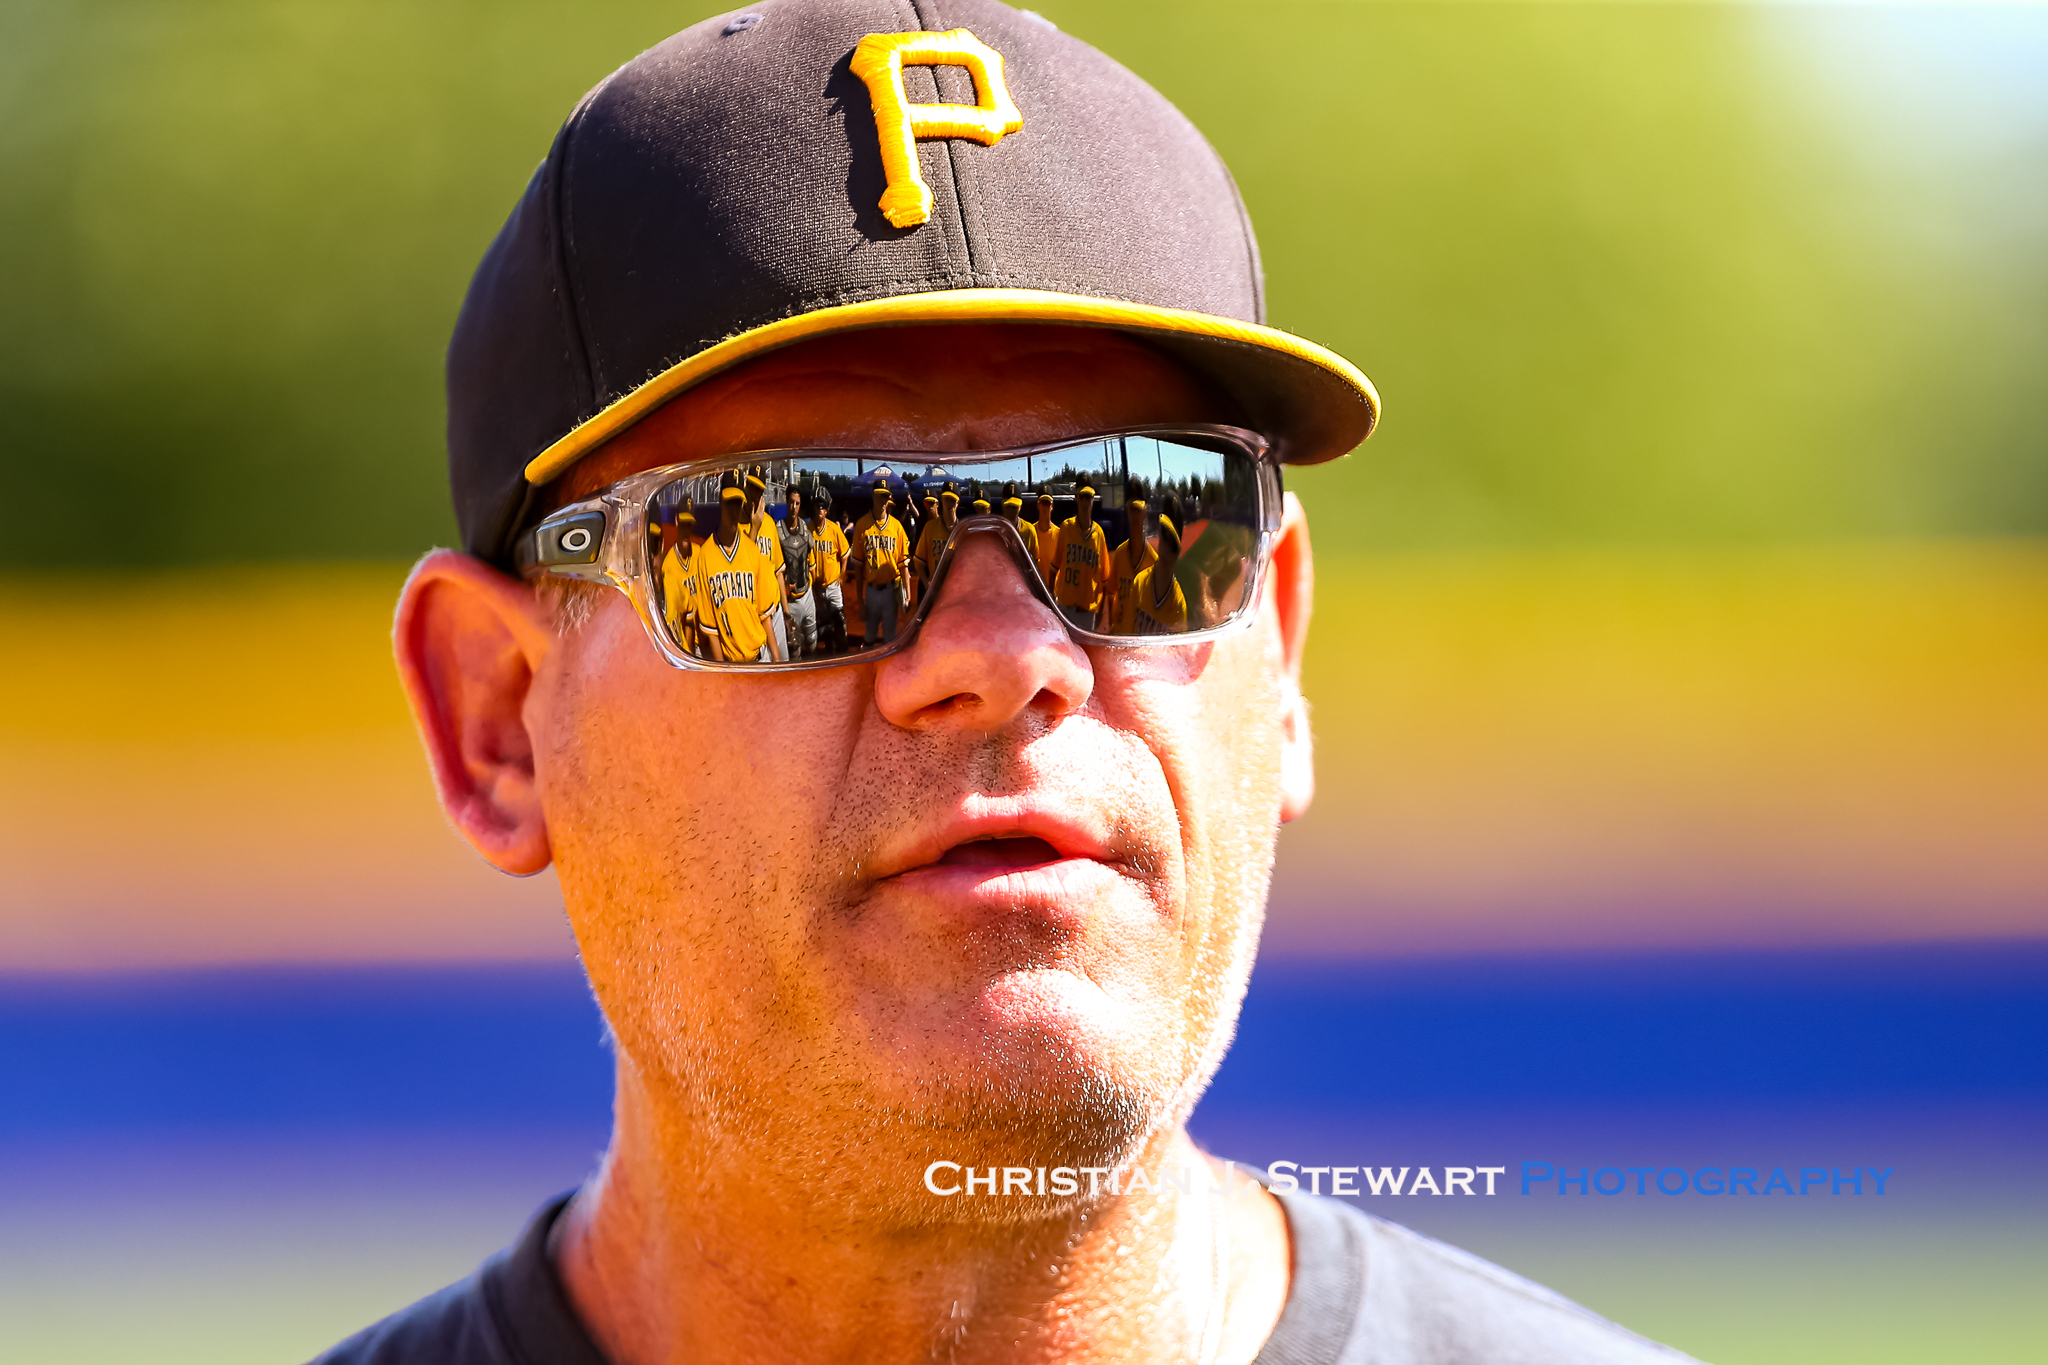 With his team reflected in his sunglasses, Pirates Head Coach Doug Rogers delivers some motivation late in Sunday's game. Photo: Christian J. Stewart.